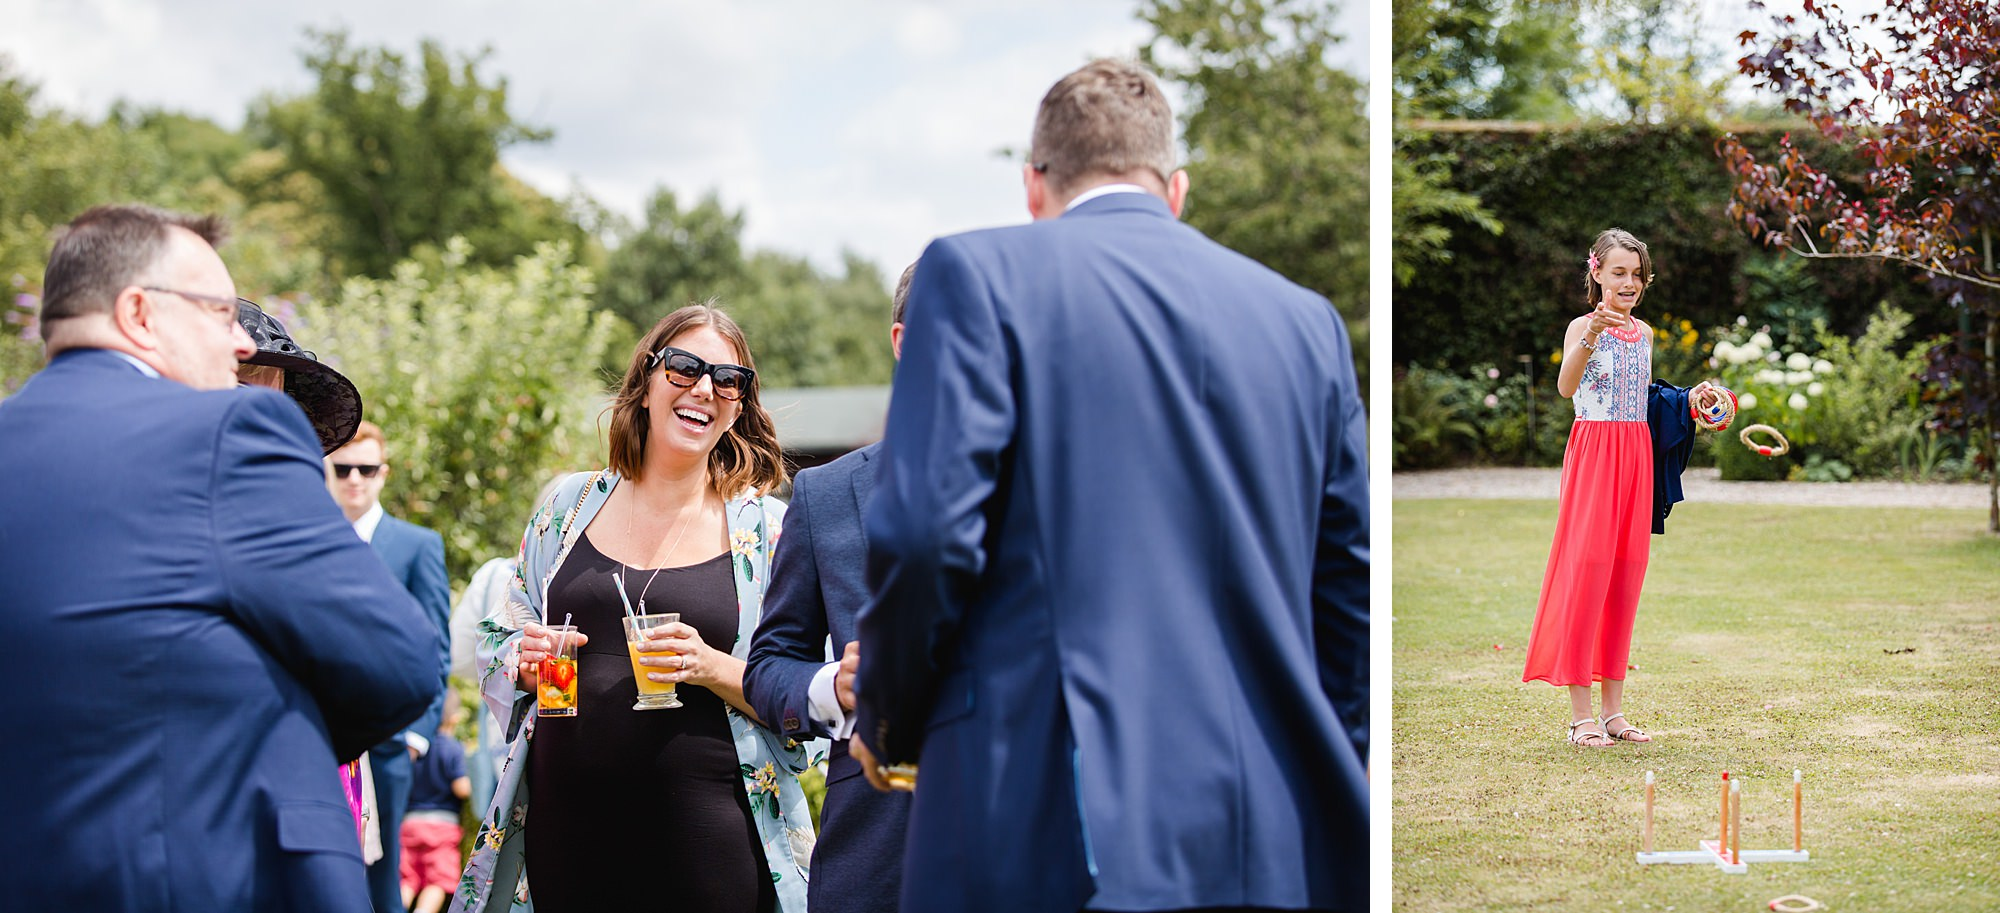 fun outdoor wedding guests laughing and playing garden games